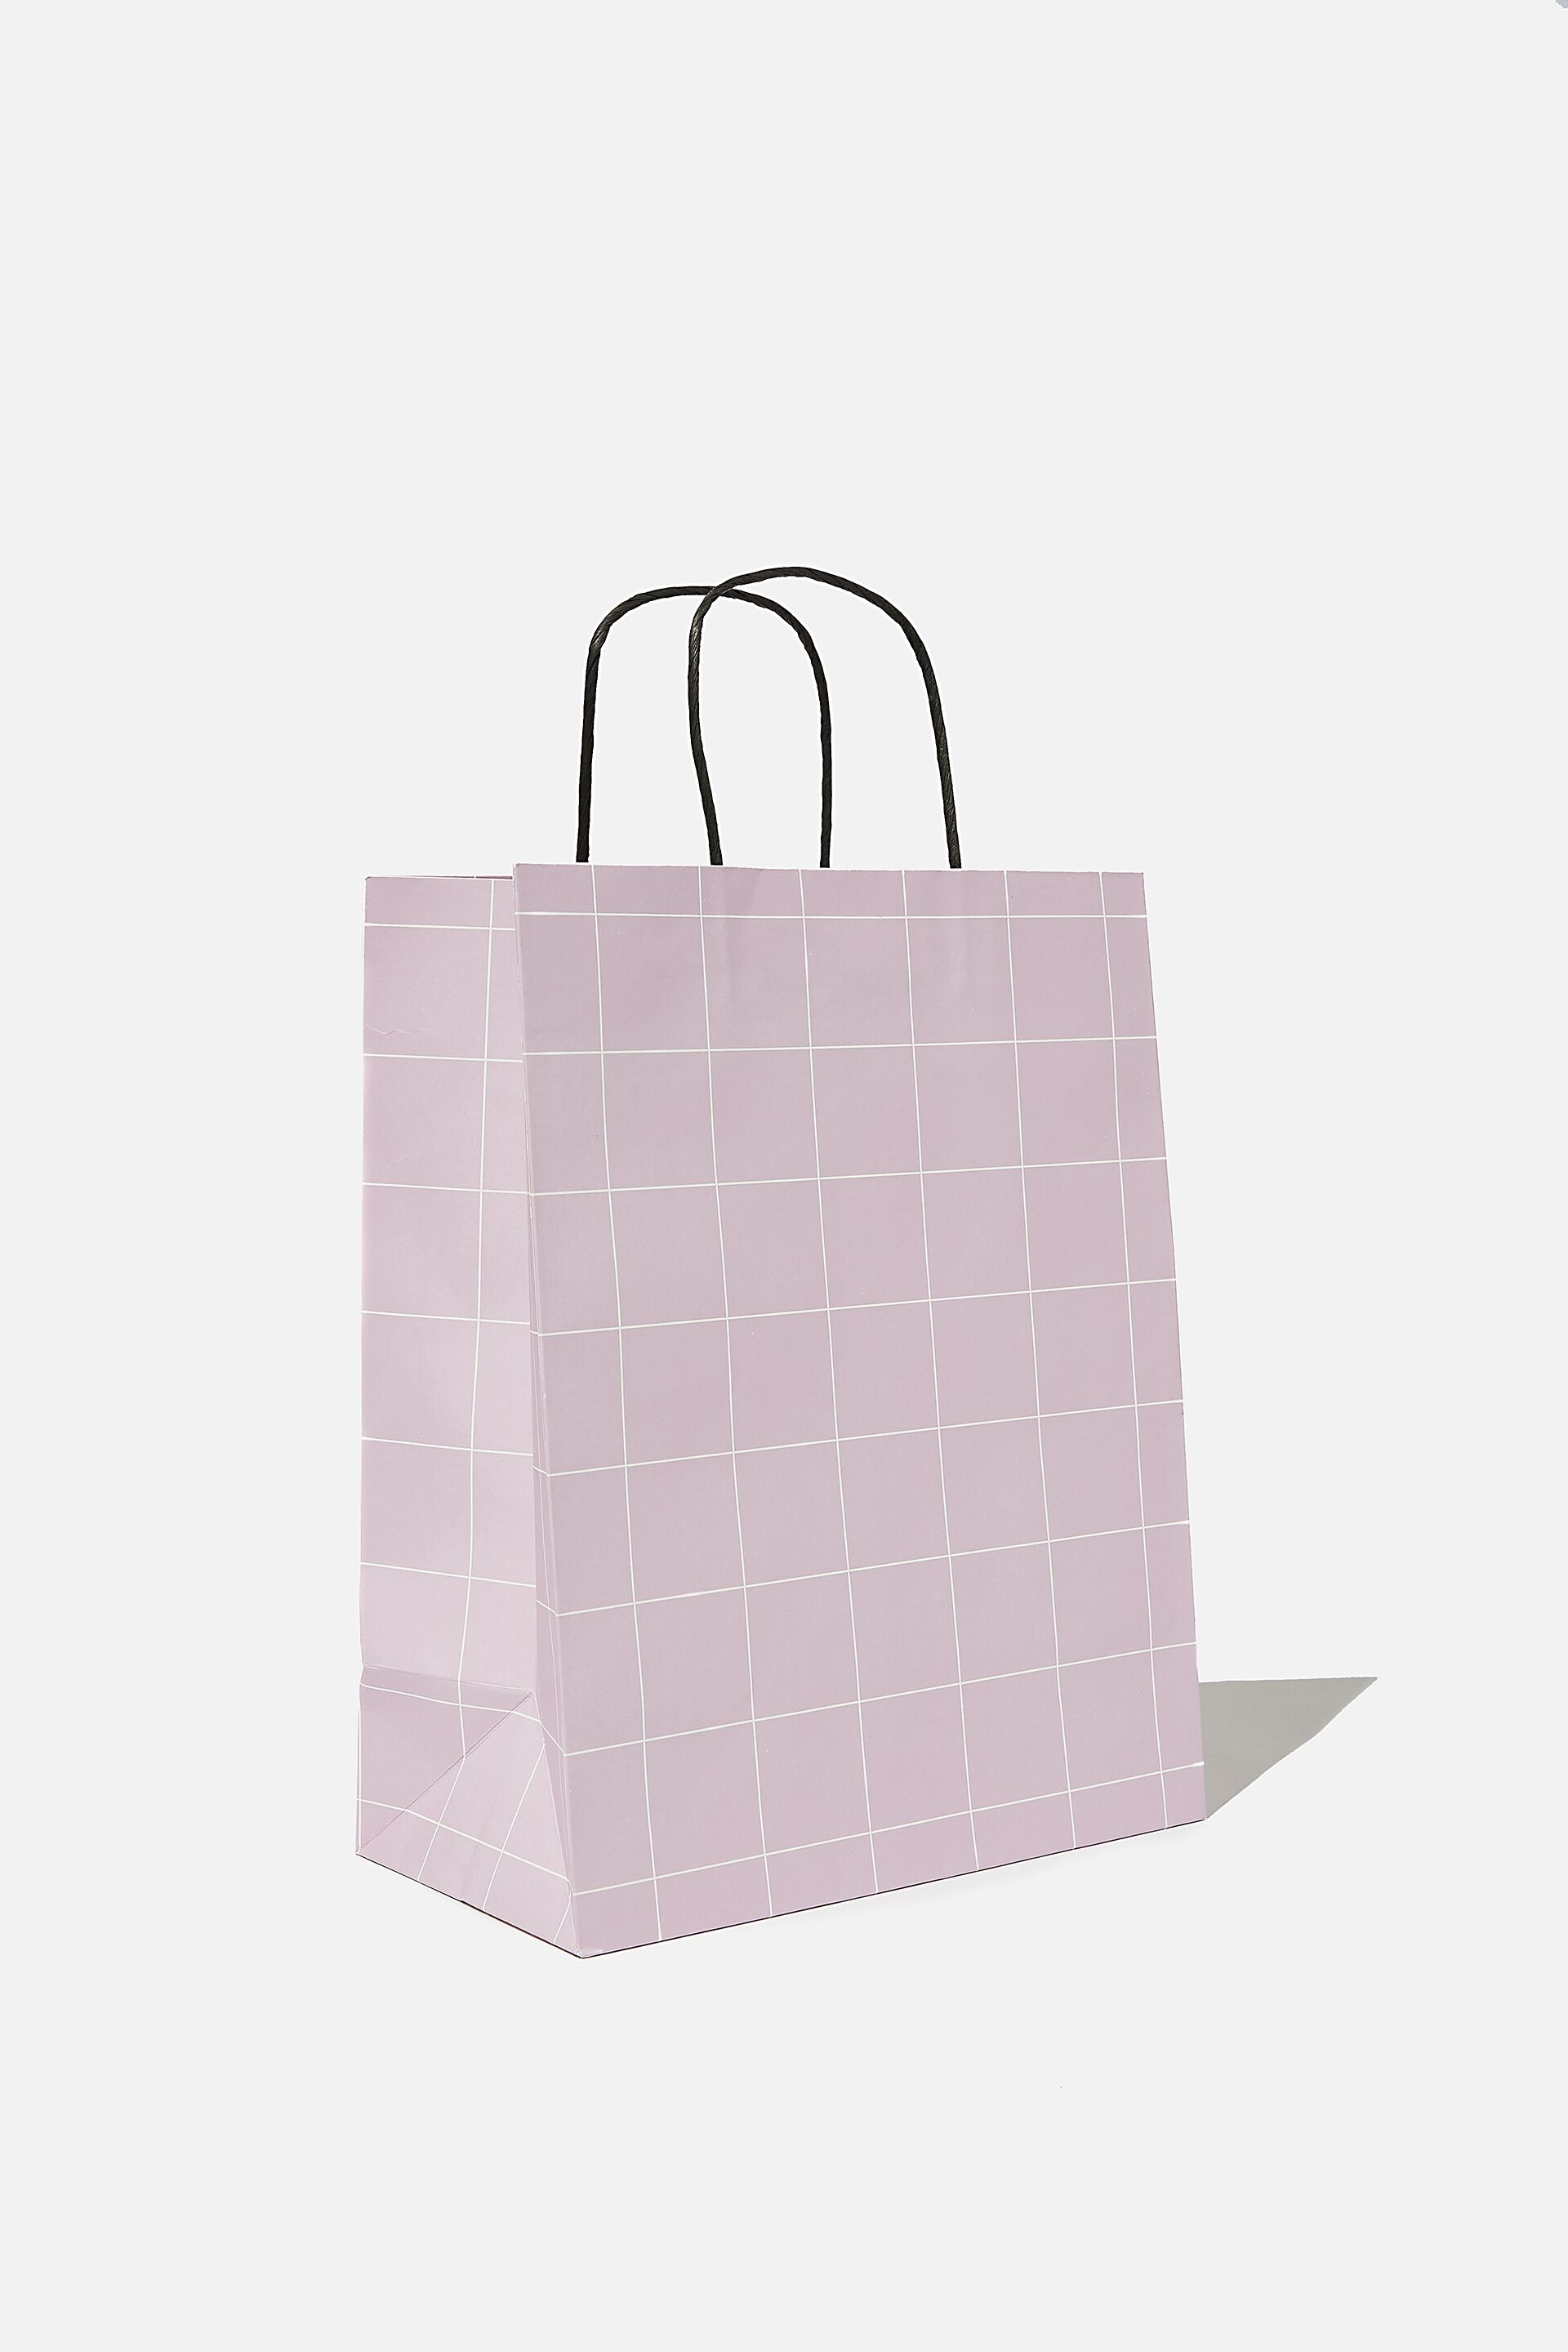 Wrapping Paper & Gift Bags | Typo